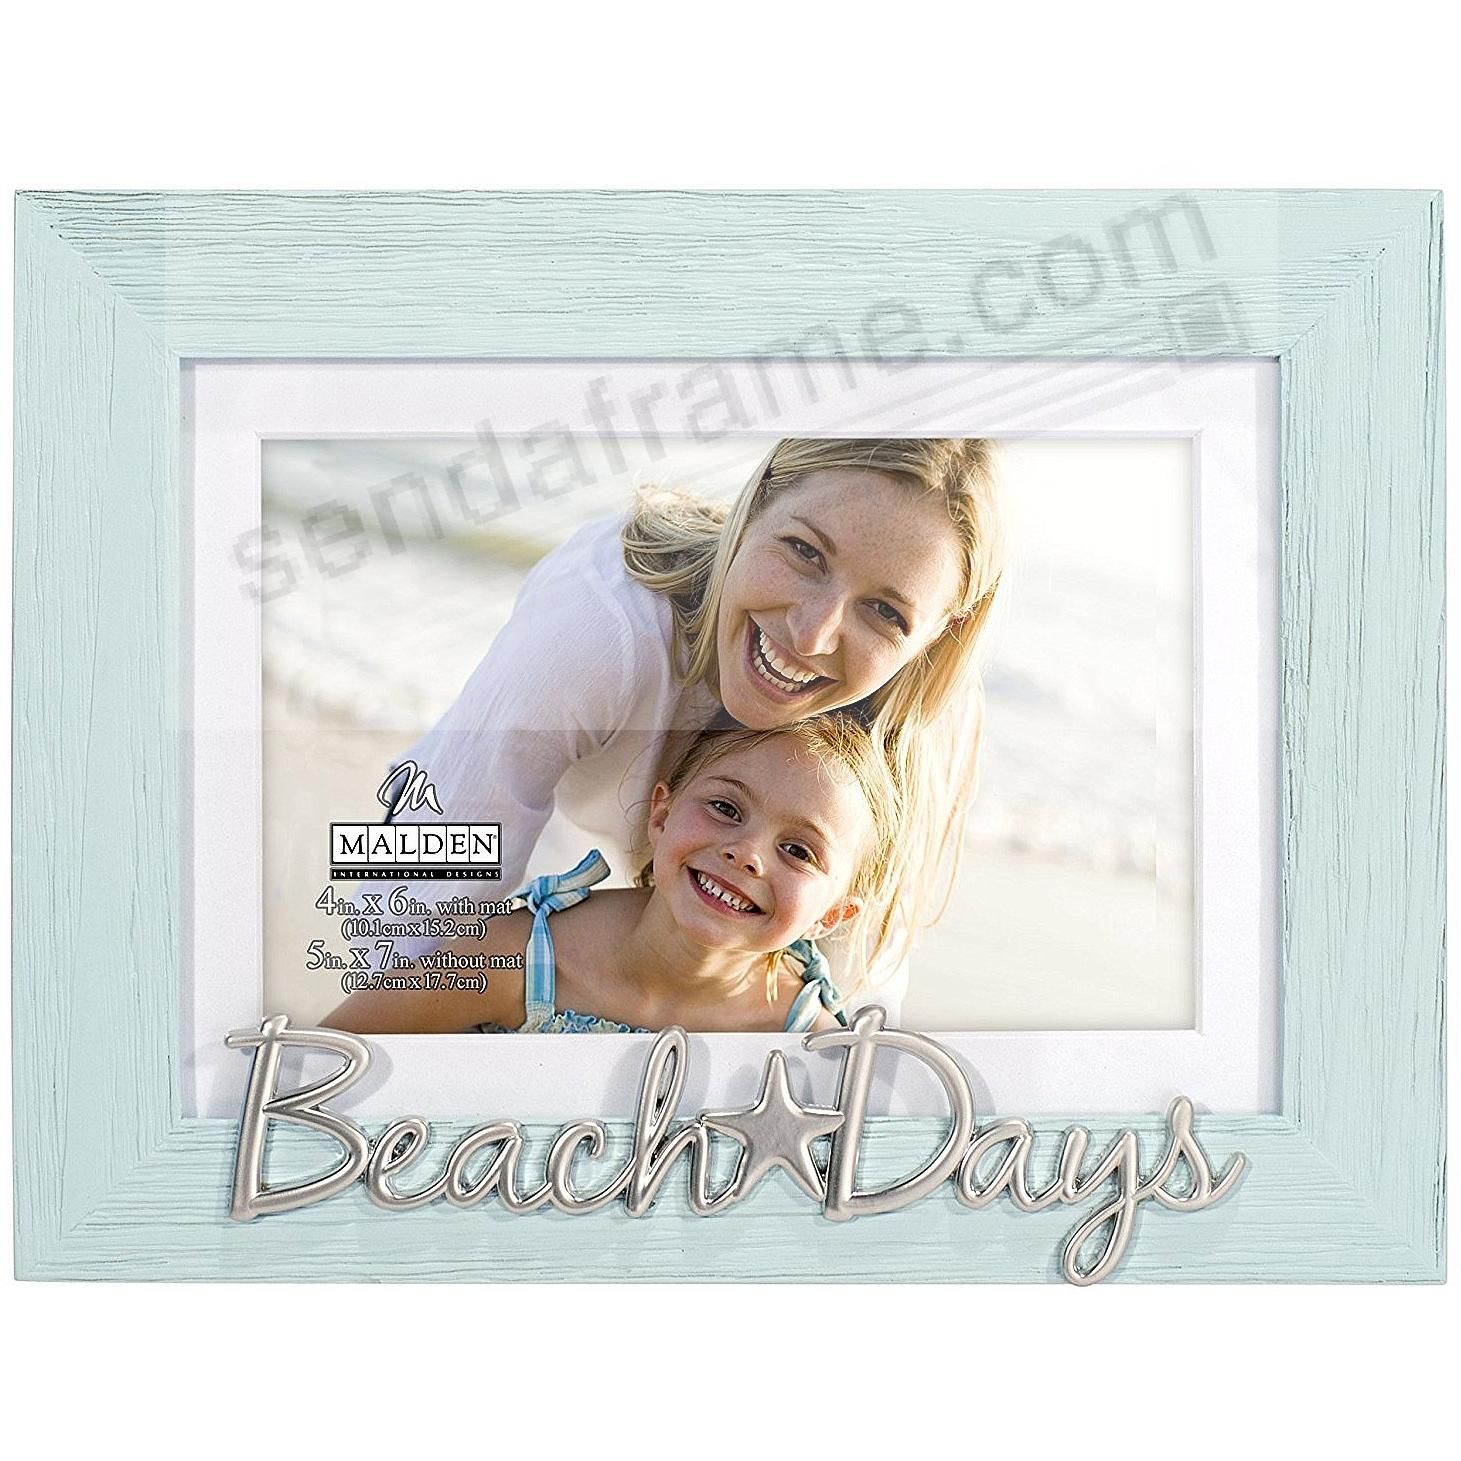 BEACH DAYS Distressed Wood 5x7/4x6 Frame Sign by Malden®